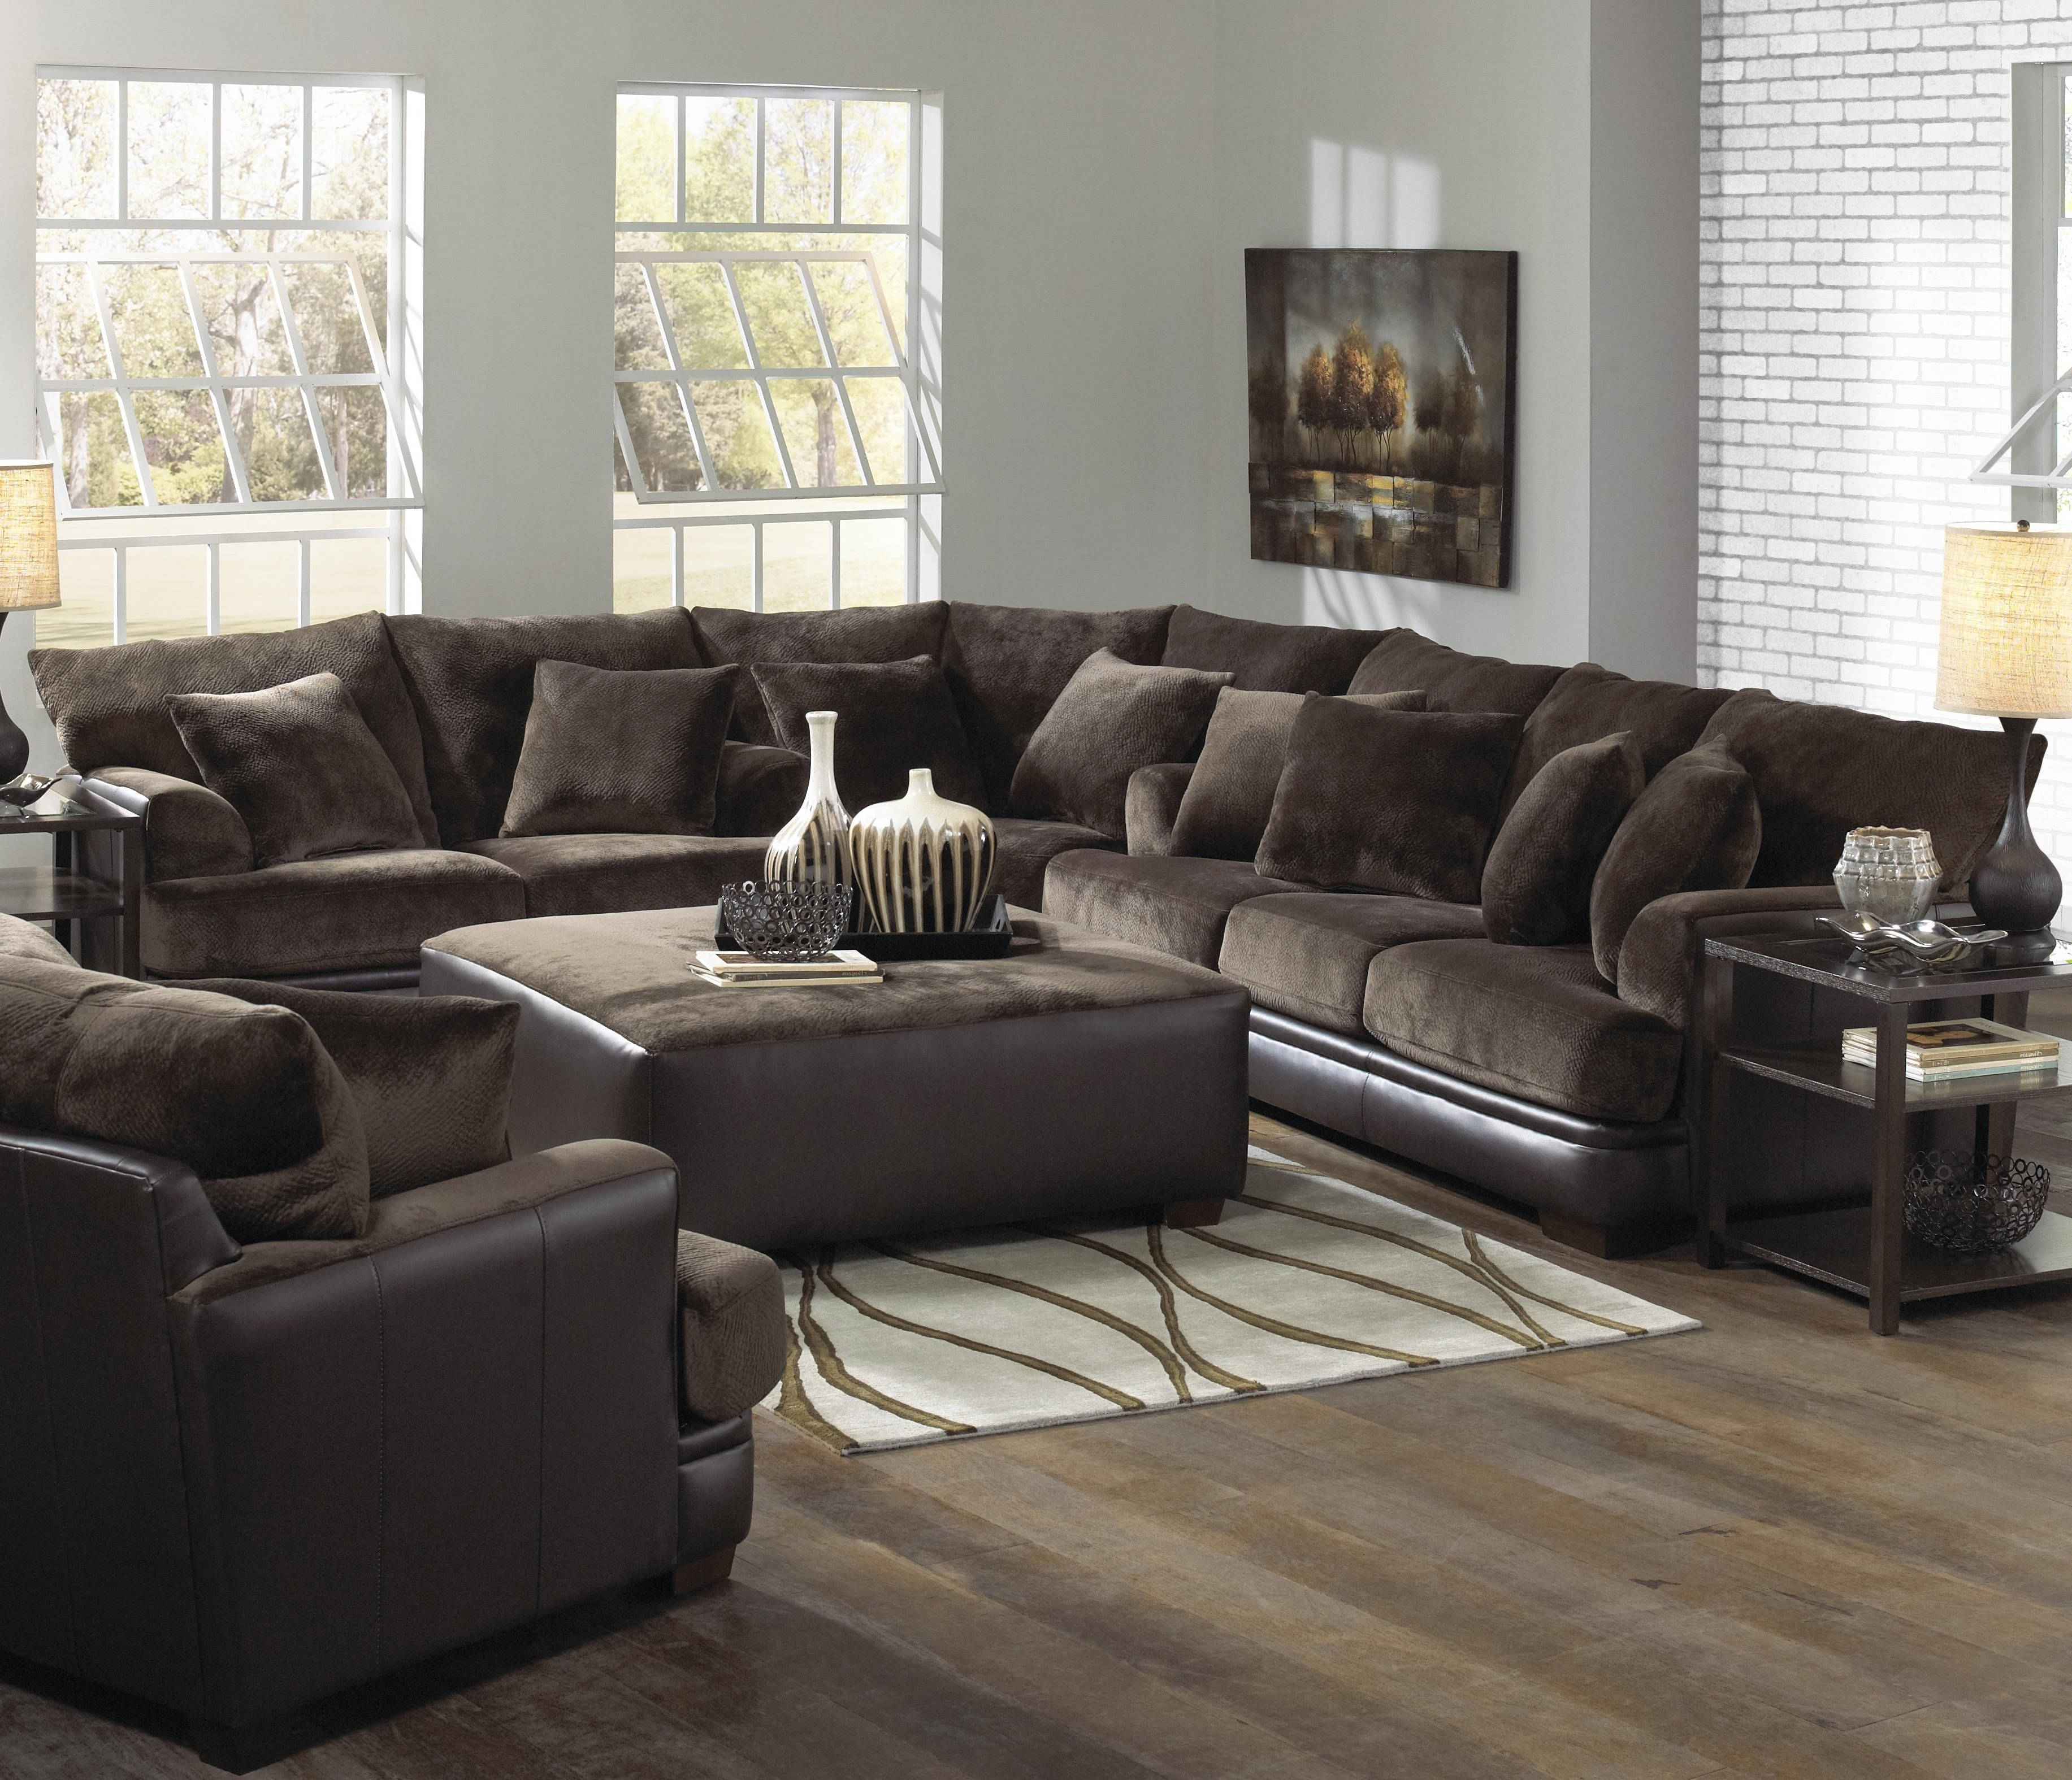 Extra Large U Shaped Sectionals Within Most Recent Big Sofas Wide Seat Sectional Small U Shaped Sectional Top Rated (View 8 of 15)